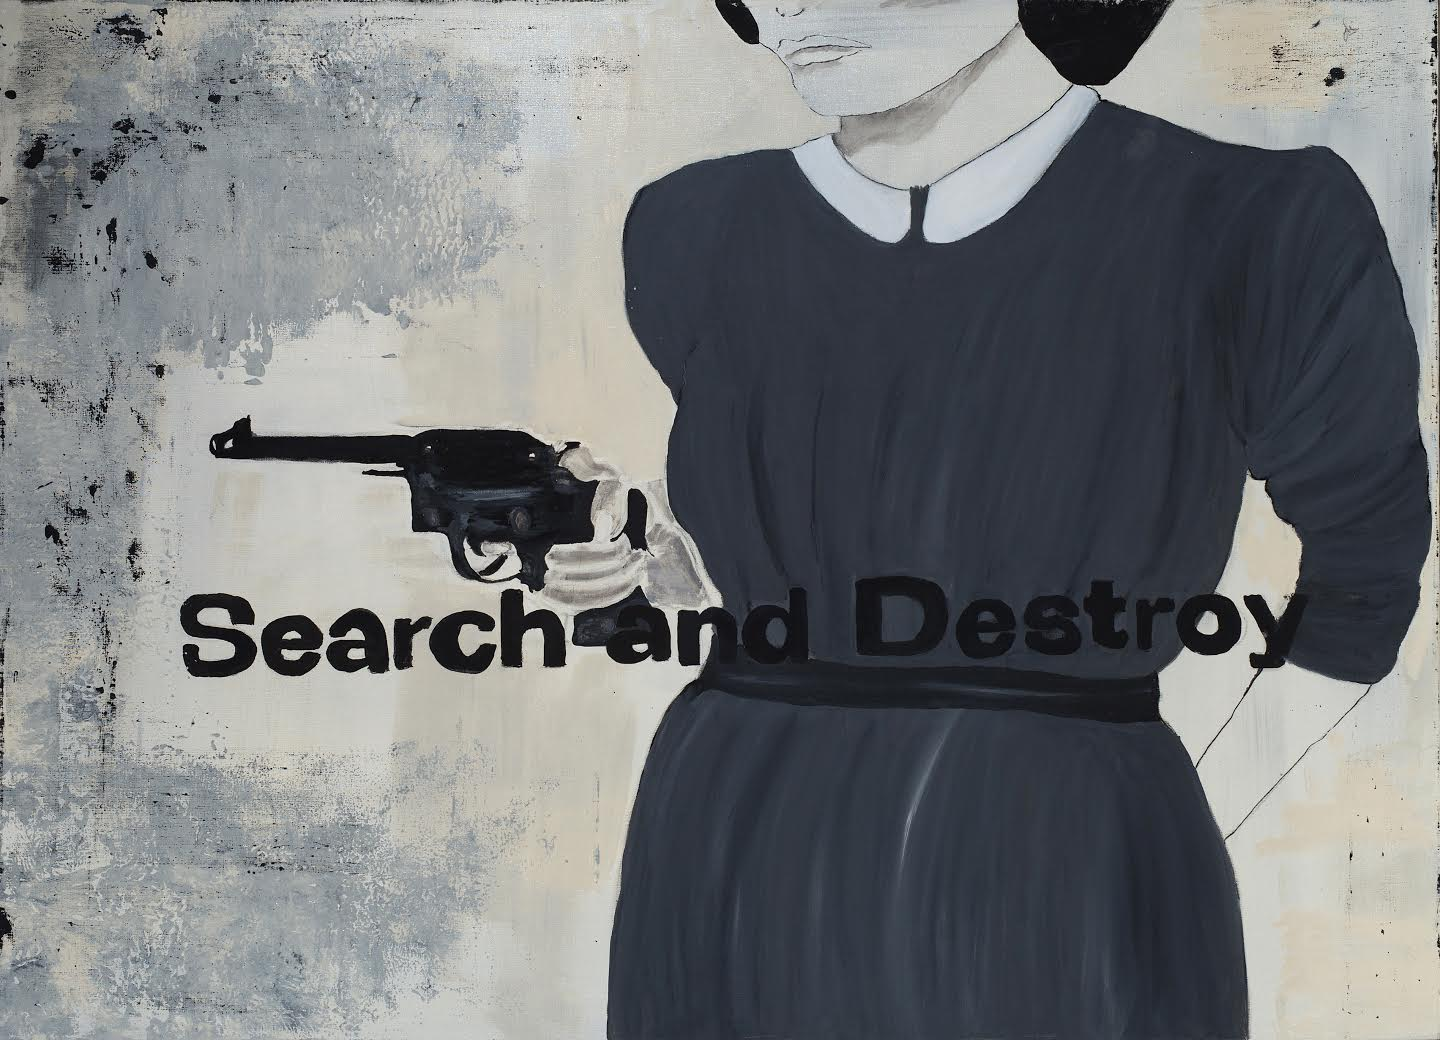 Paulina Jazvić, Search and Destroy, oil and acrylic on canvas, 180x130cm, 2015